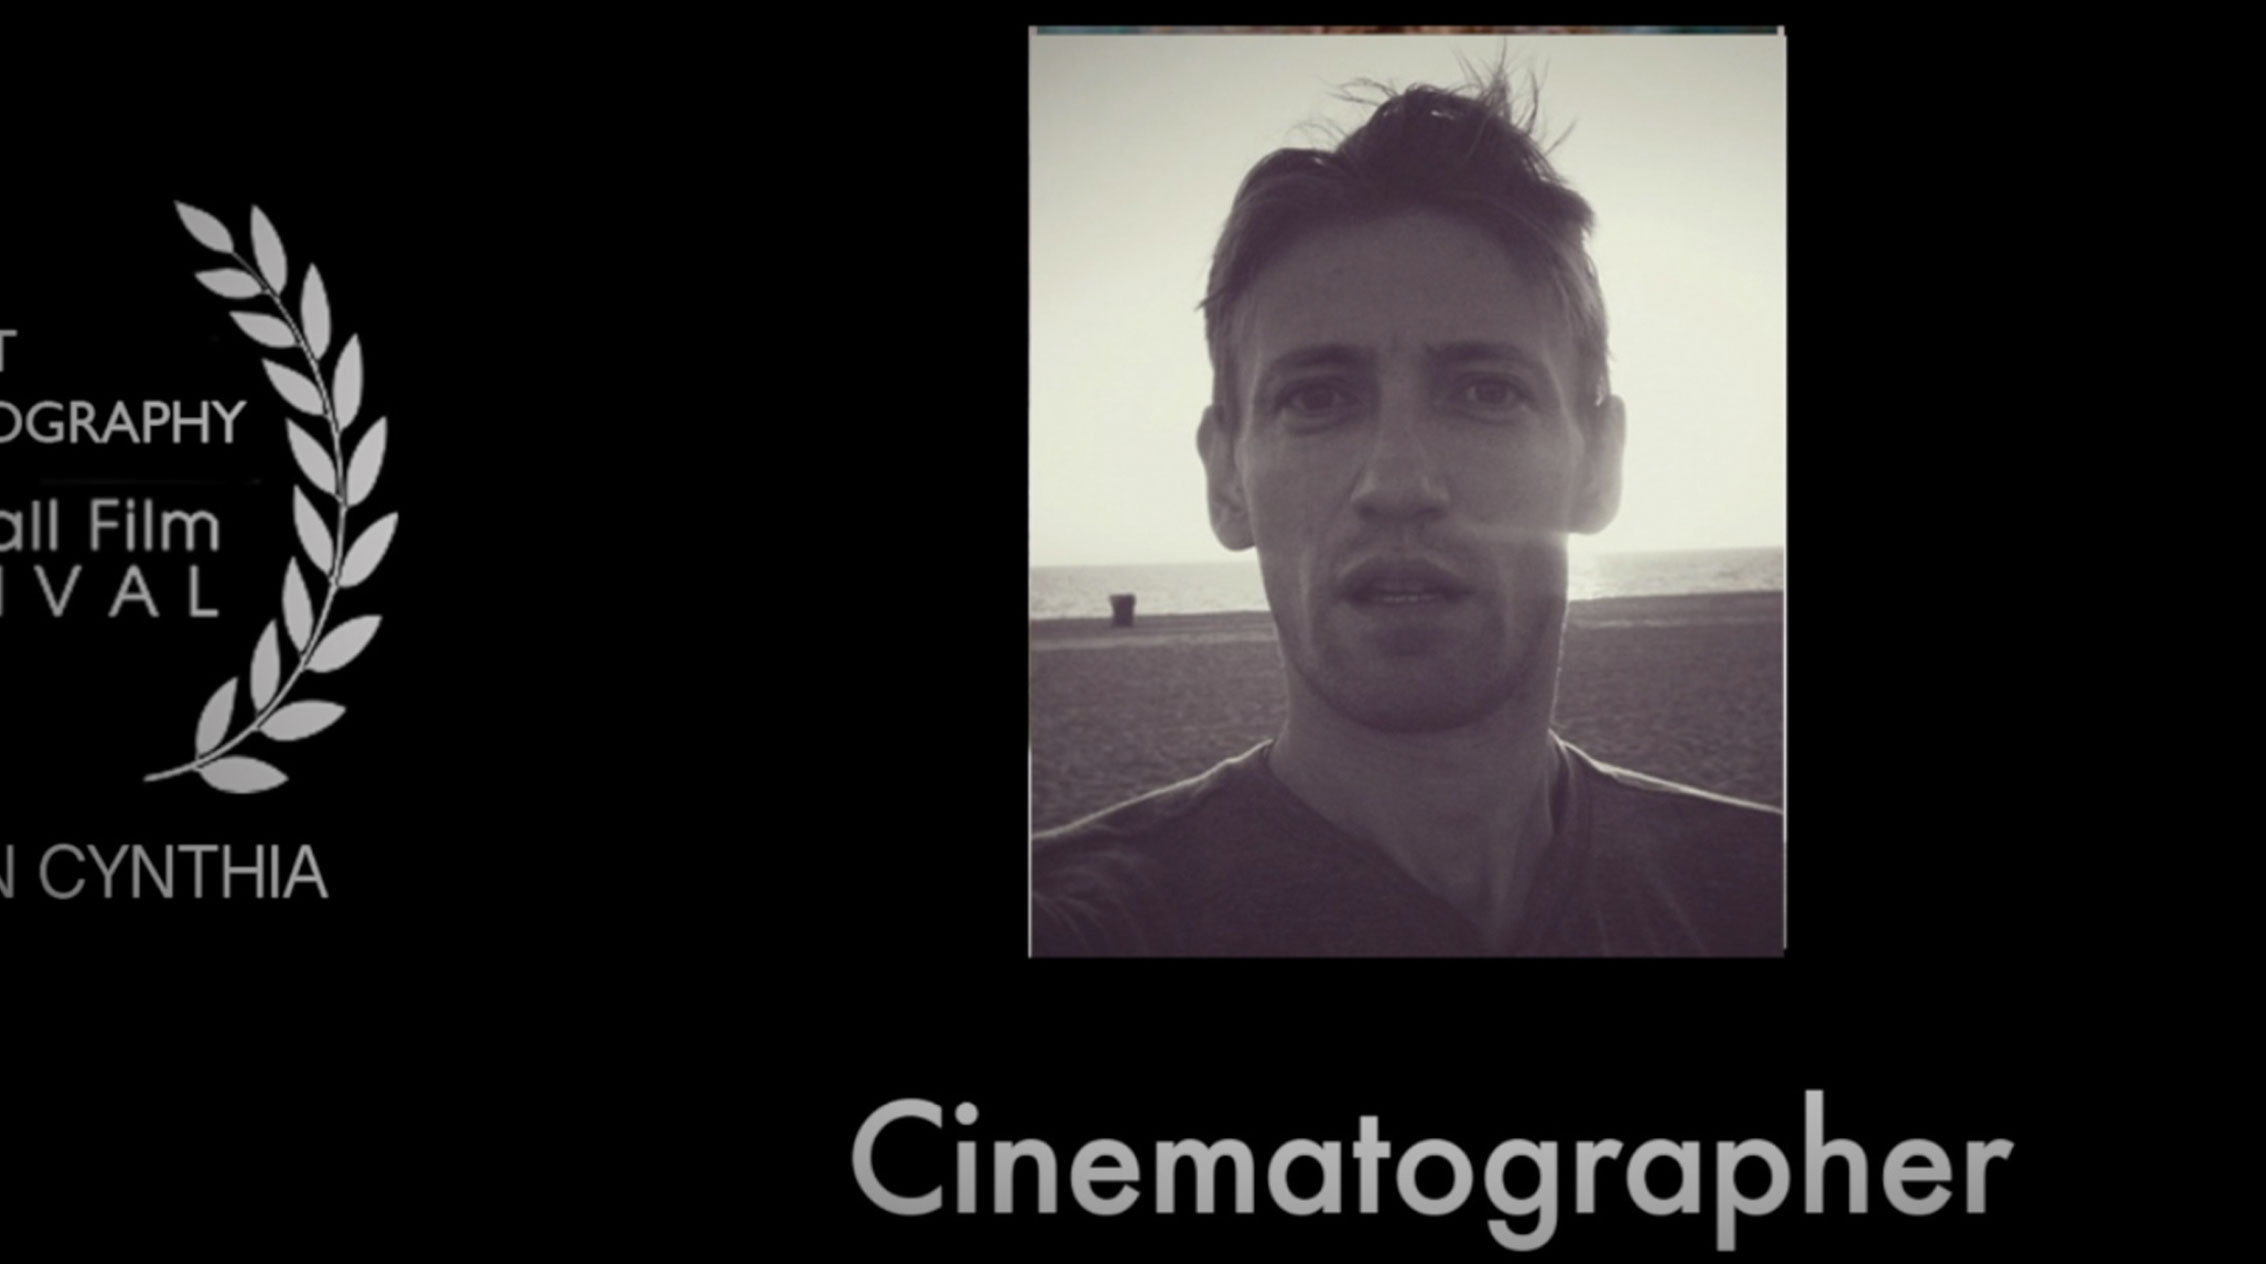 Roy af Hasselblad is a recent émigré to the USA, Roy is well-spoken and charming. He drives a vintage, red Swedish car and teaches cinematography (played by Bogdan Kwiatkowski)